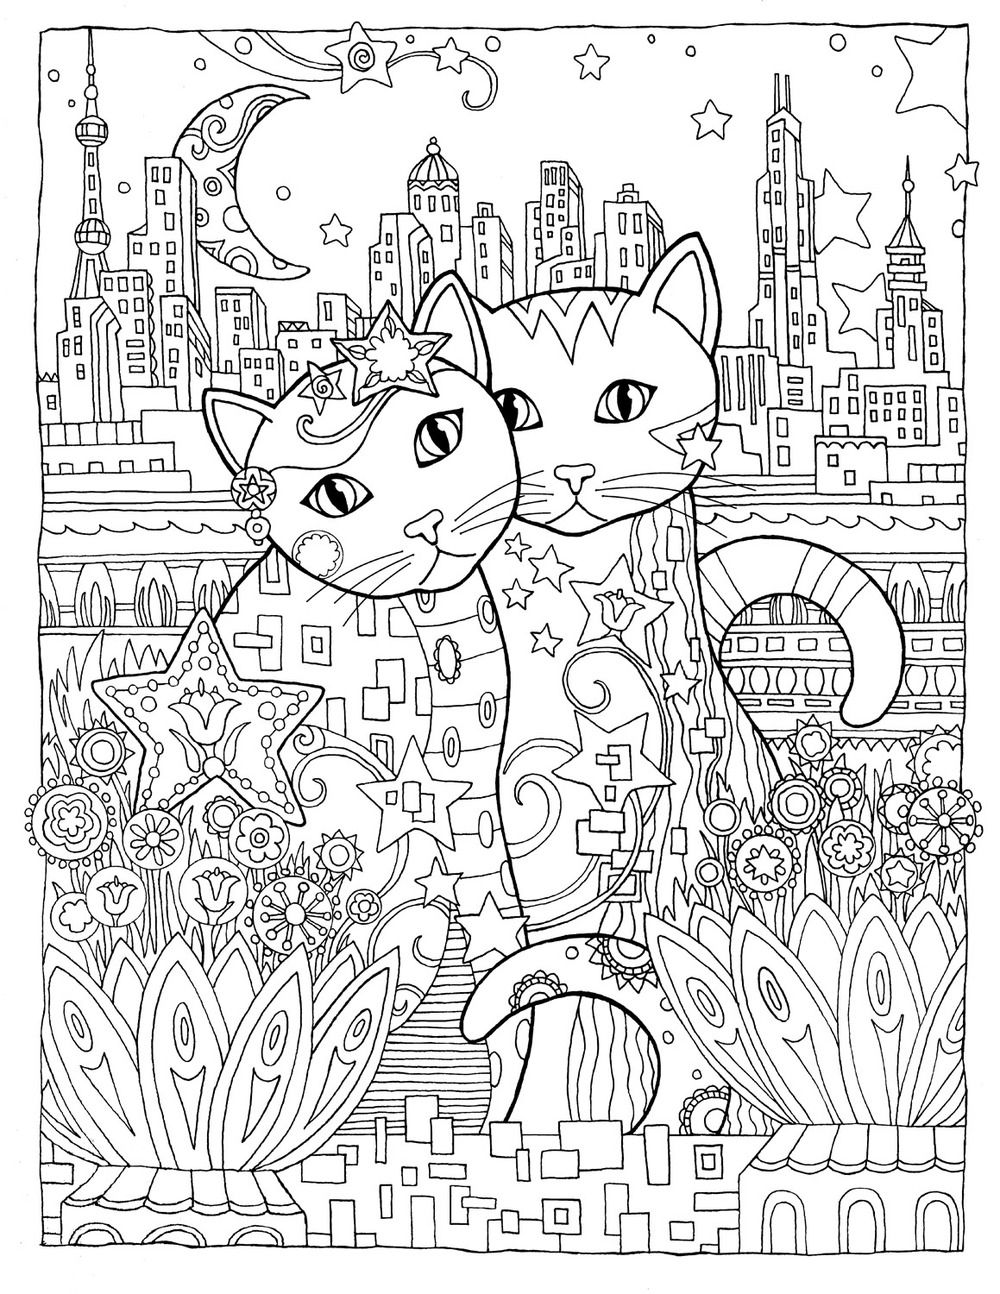 Creative Cats Cat Coloring Book Cat Coloring Page Kitten Coloring Book